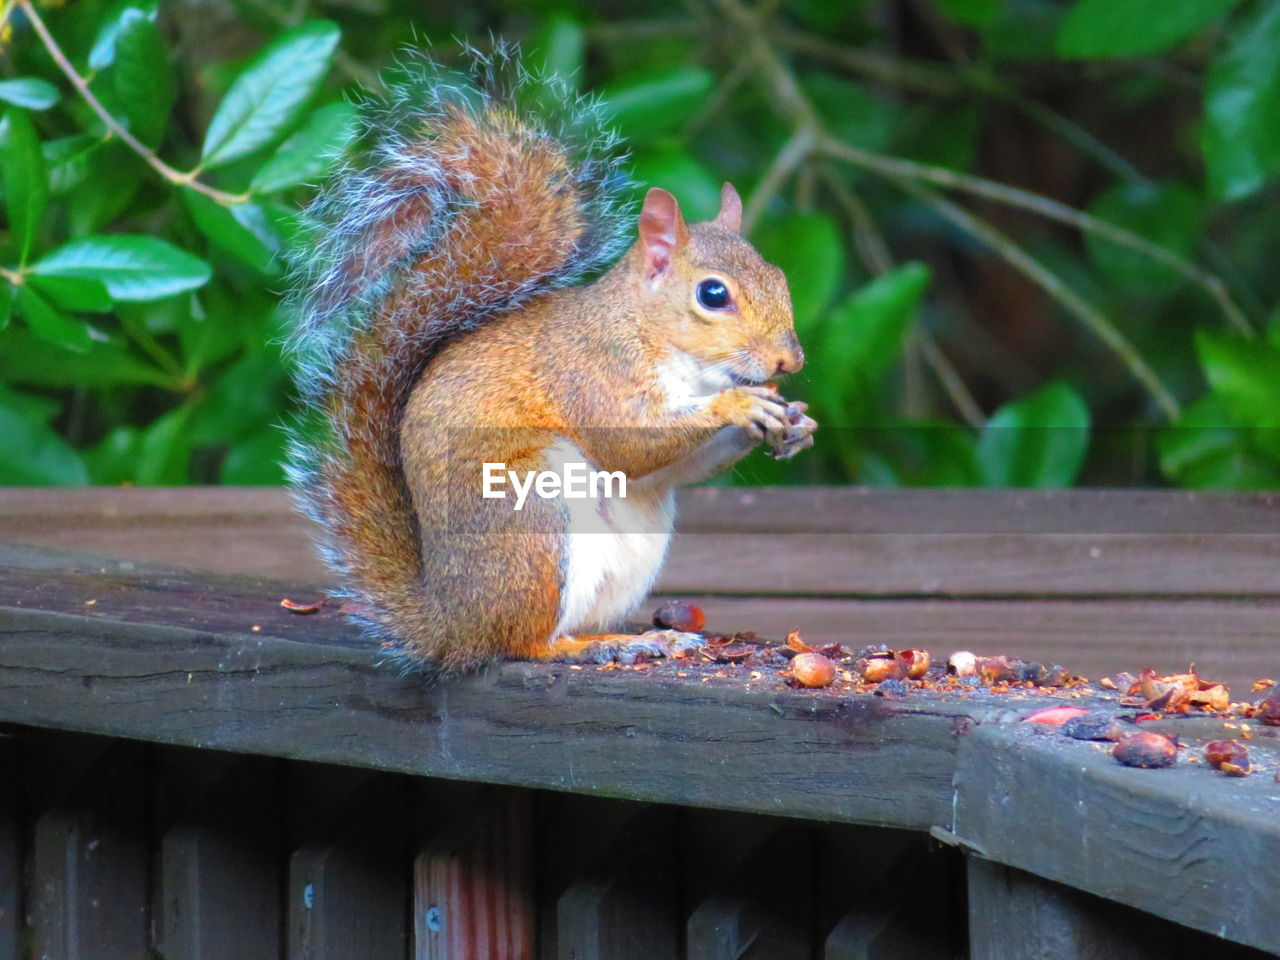 animal themes, animal, animal wildlife, squirrel, rodent, animals in the wild, mammal, one animal, vertebrate, no people, wood - material, eating, nature, close-up, focus on foreground, day, food, plant, outdoors, side view